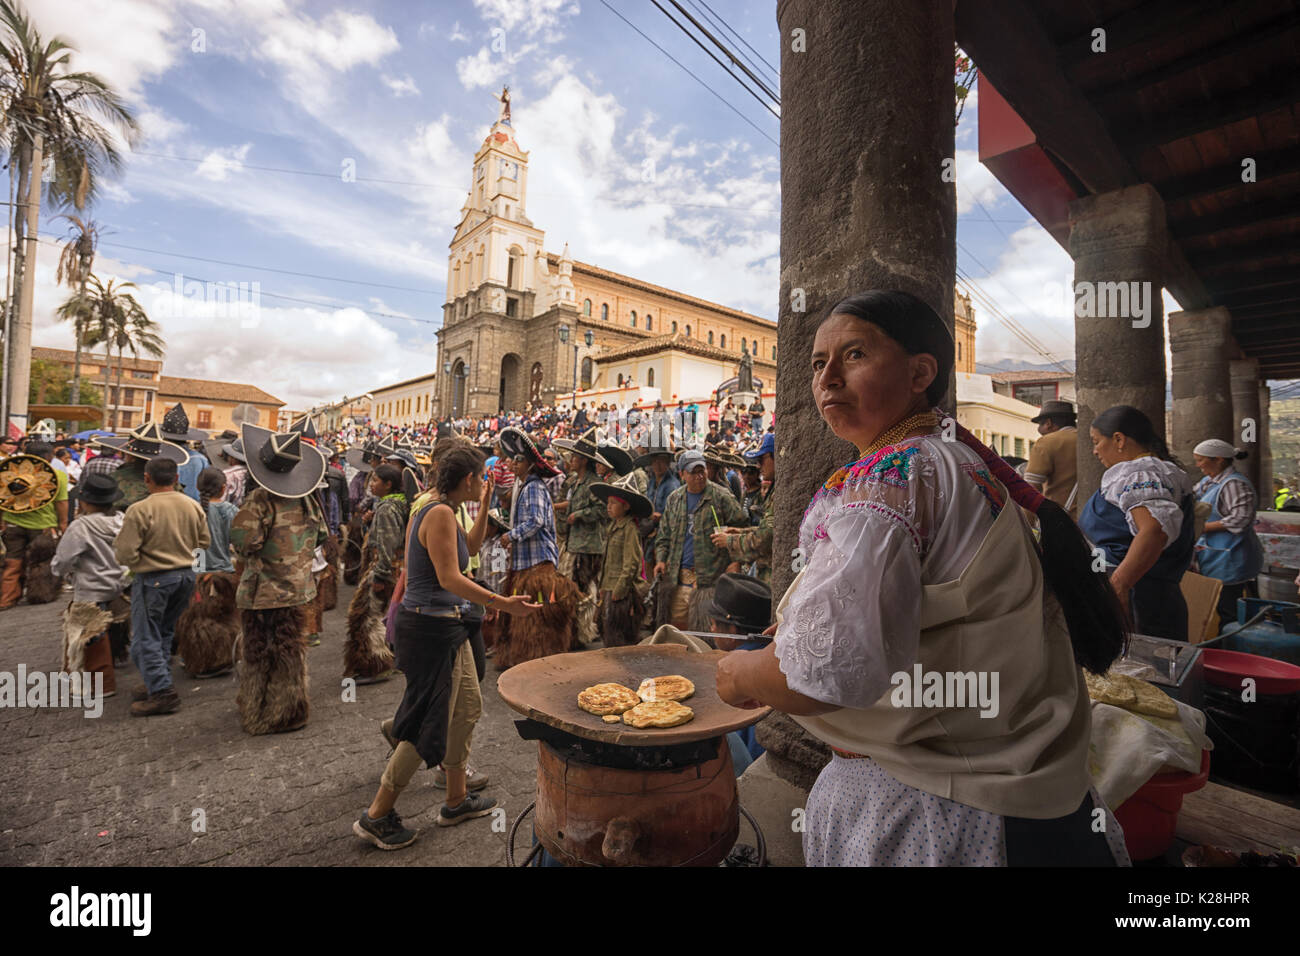 June 25, 2017 Cotacachi, Ecuador: vendors on the side of the main plaza offering traditional food for the parade participants at Inti Raymi - Stock Image